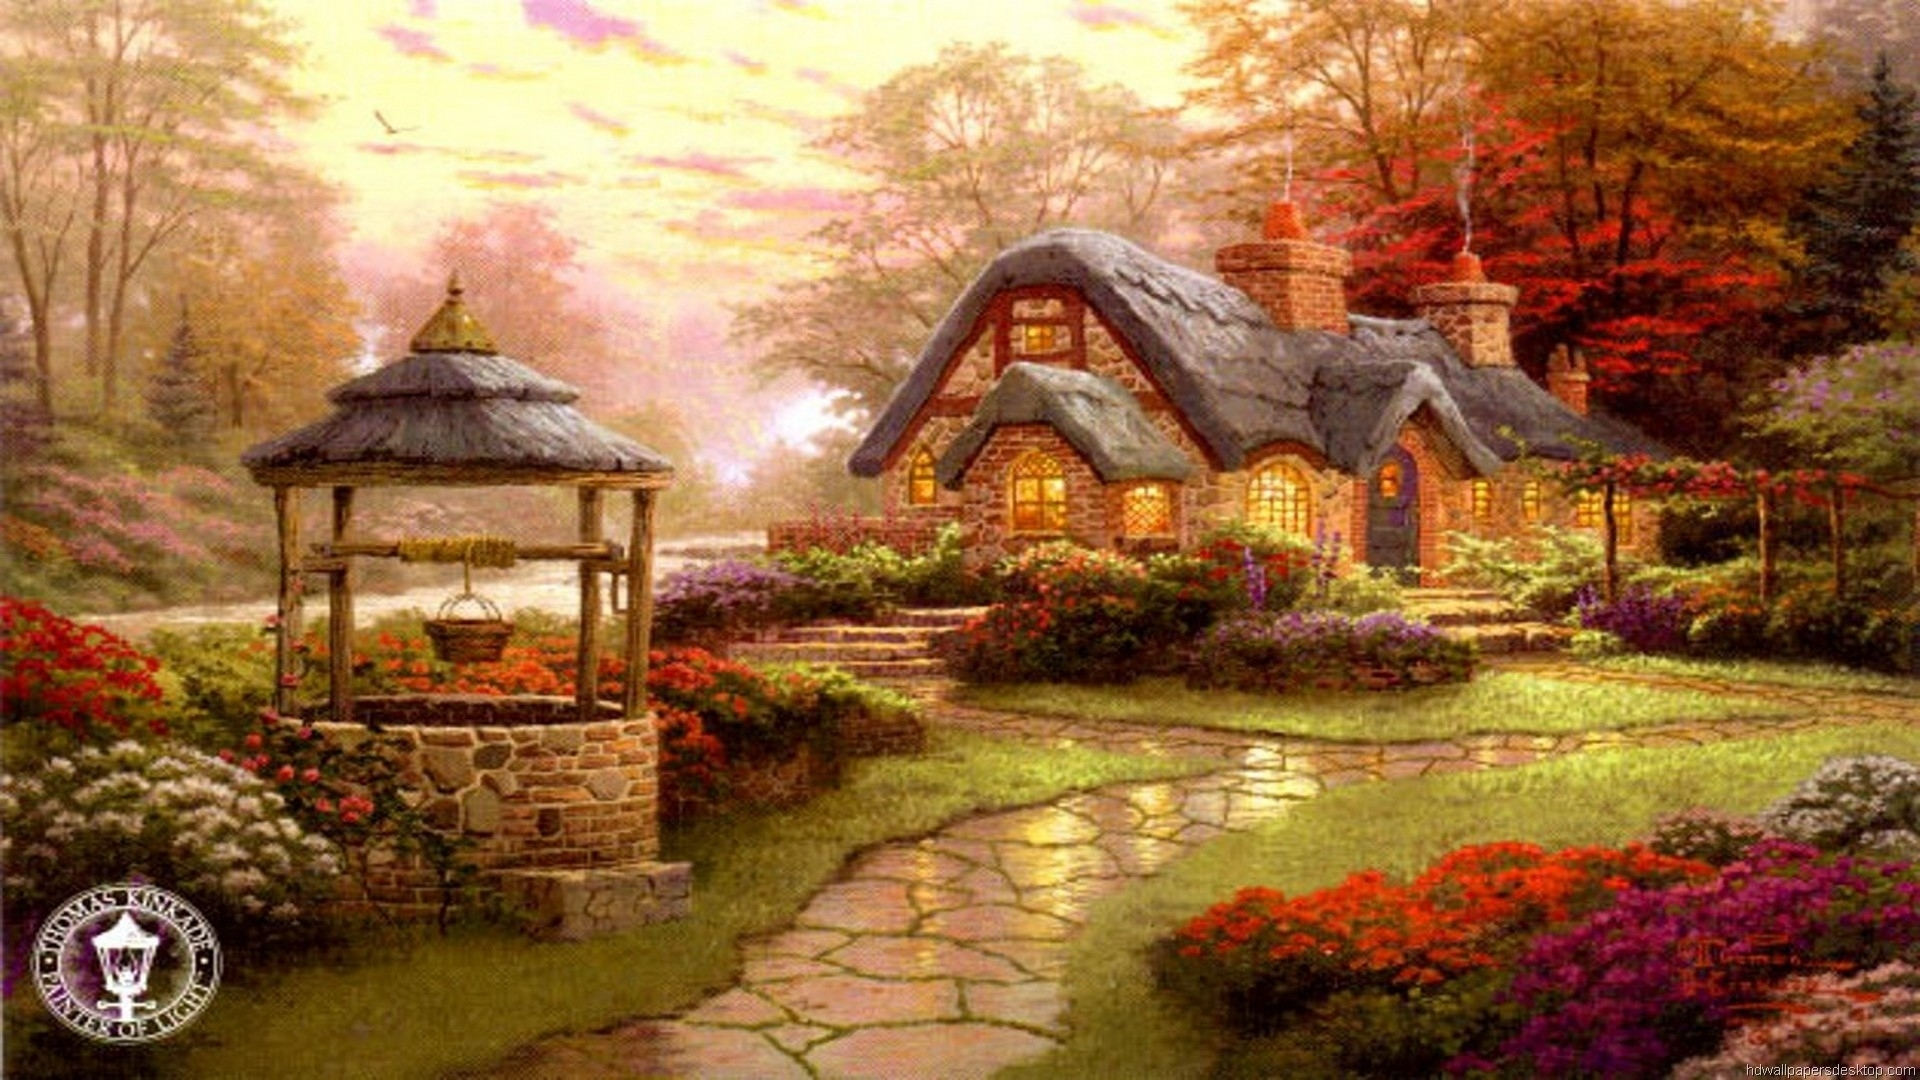 thomas kinkade wallpapers for desktop ·①